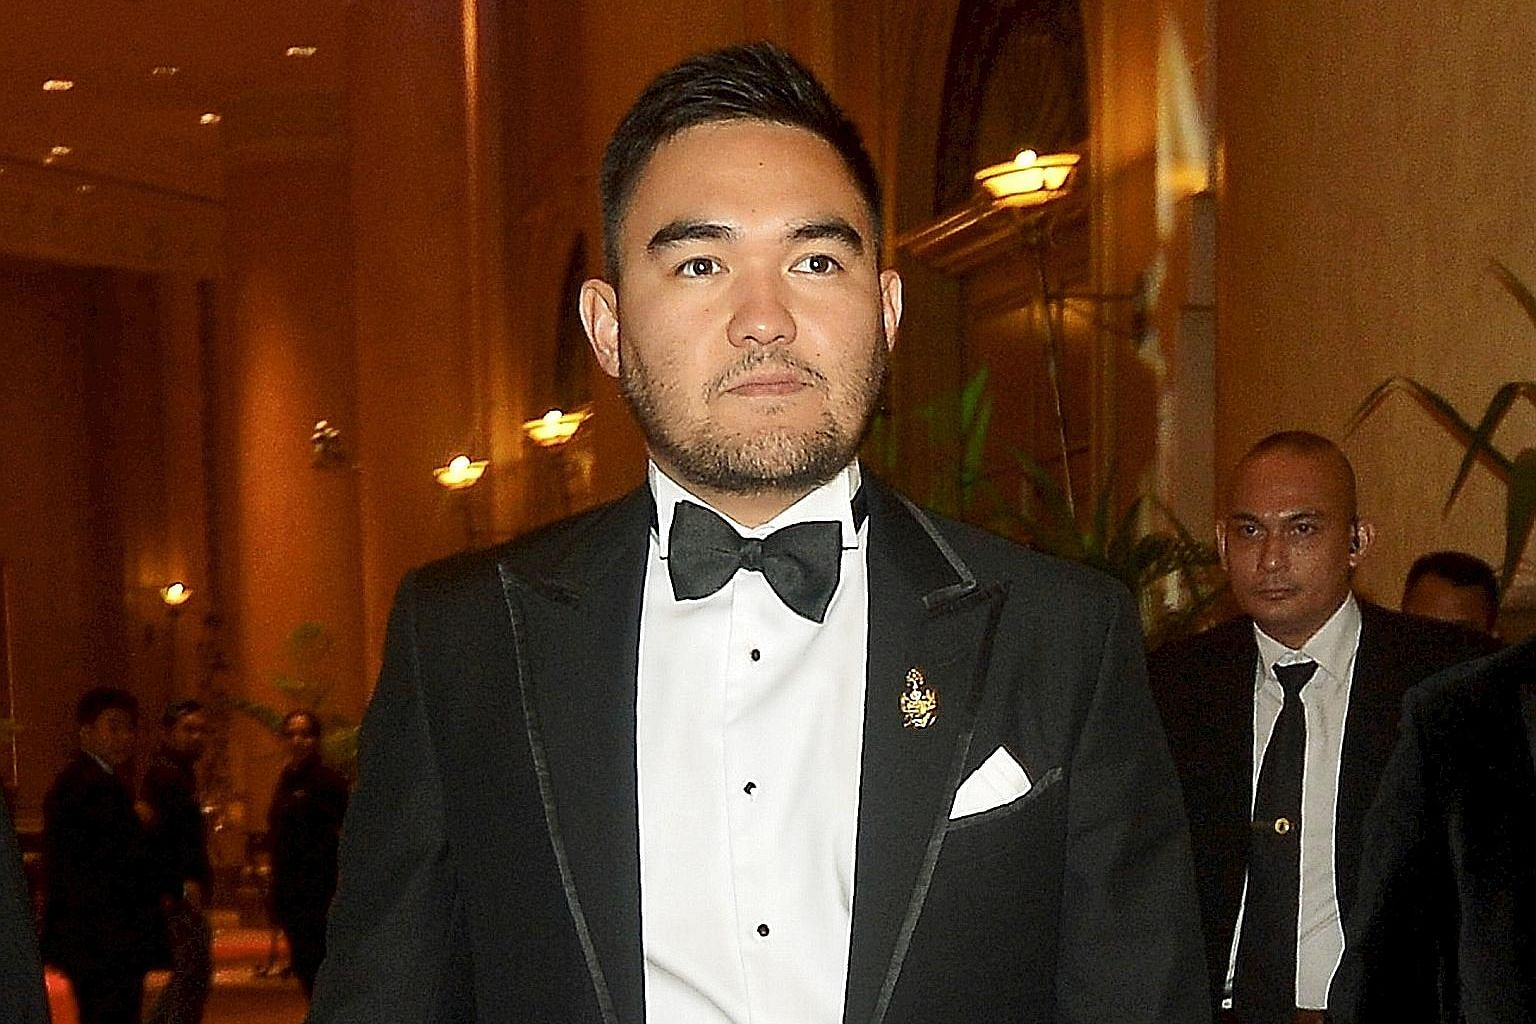 Selangor's Crown Prince, Tengku Amir Shah Sultan Idris Shah, is a stakeholder in the firm jointly developing the forest plot.